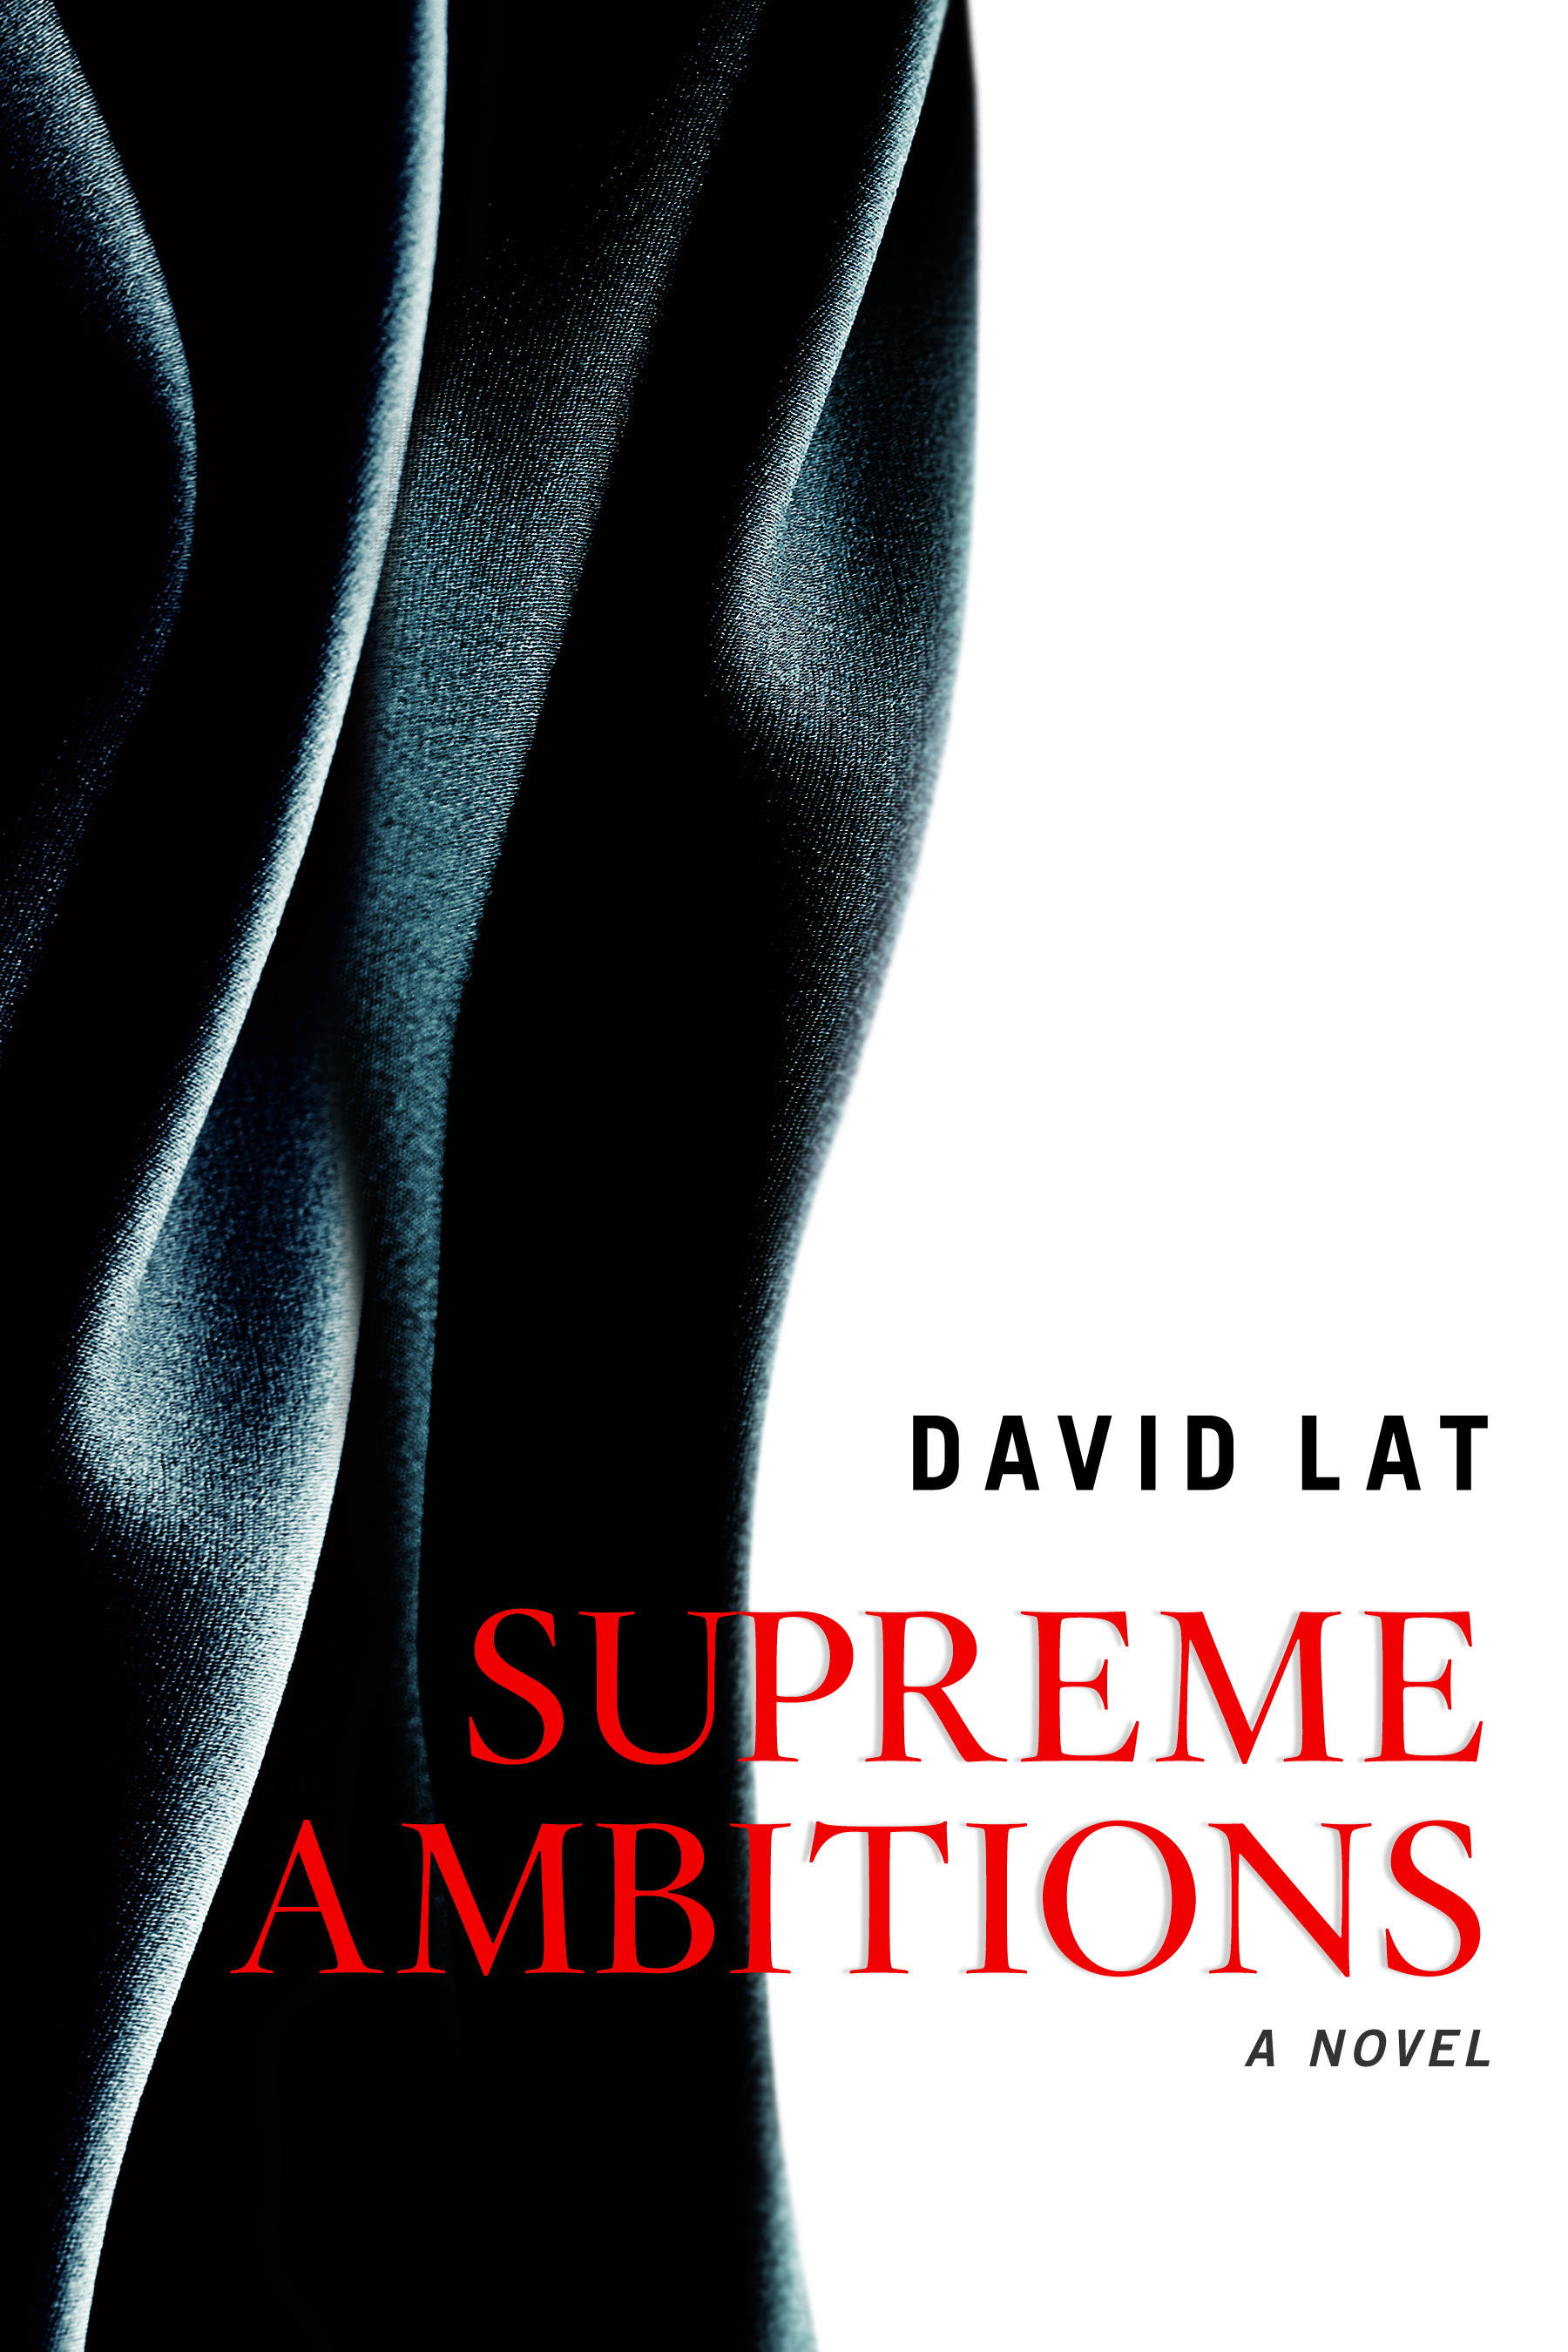 supreme-ambitions-cover-high-resolution (1).jpg